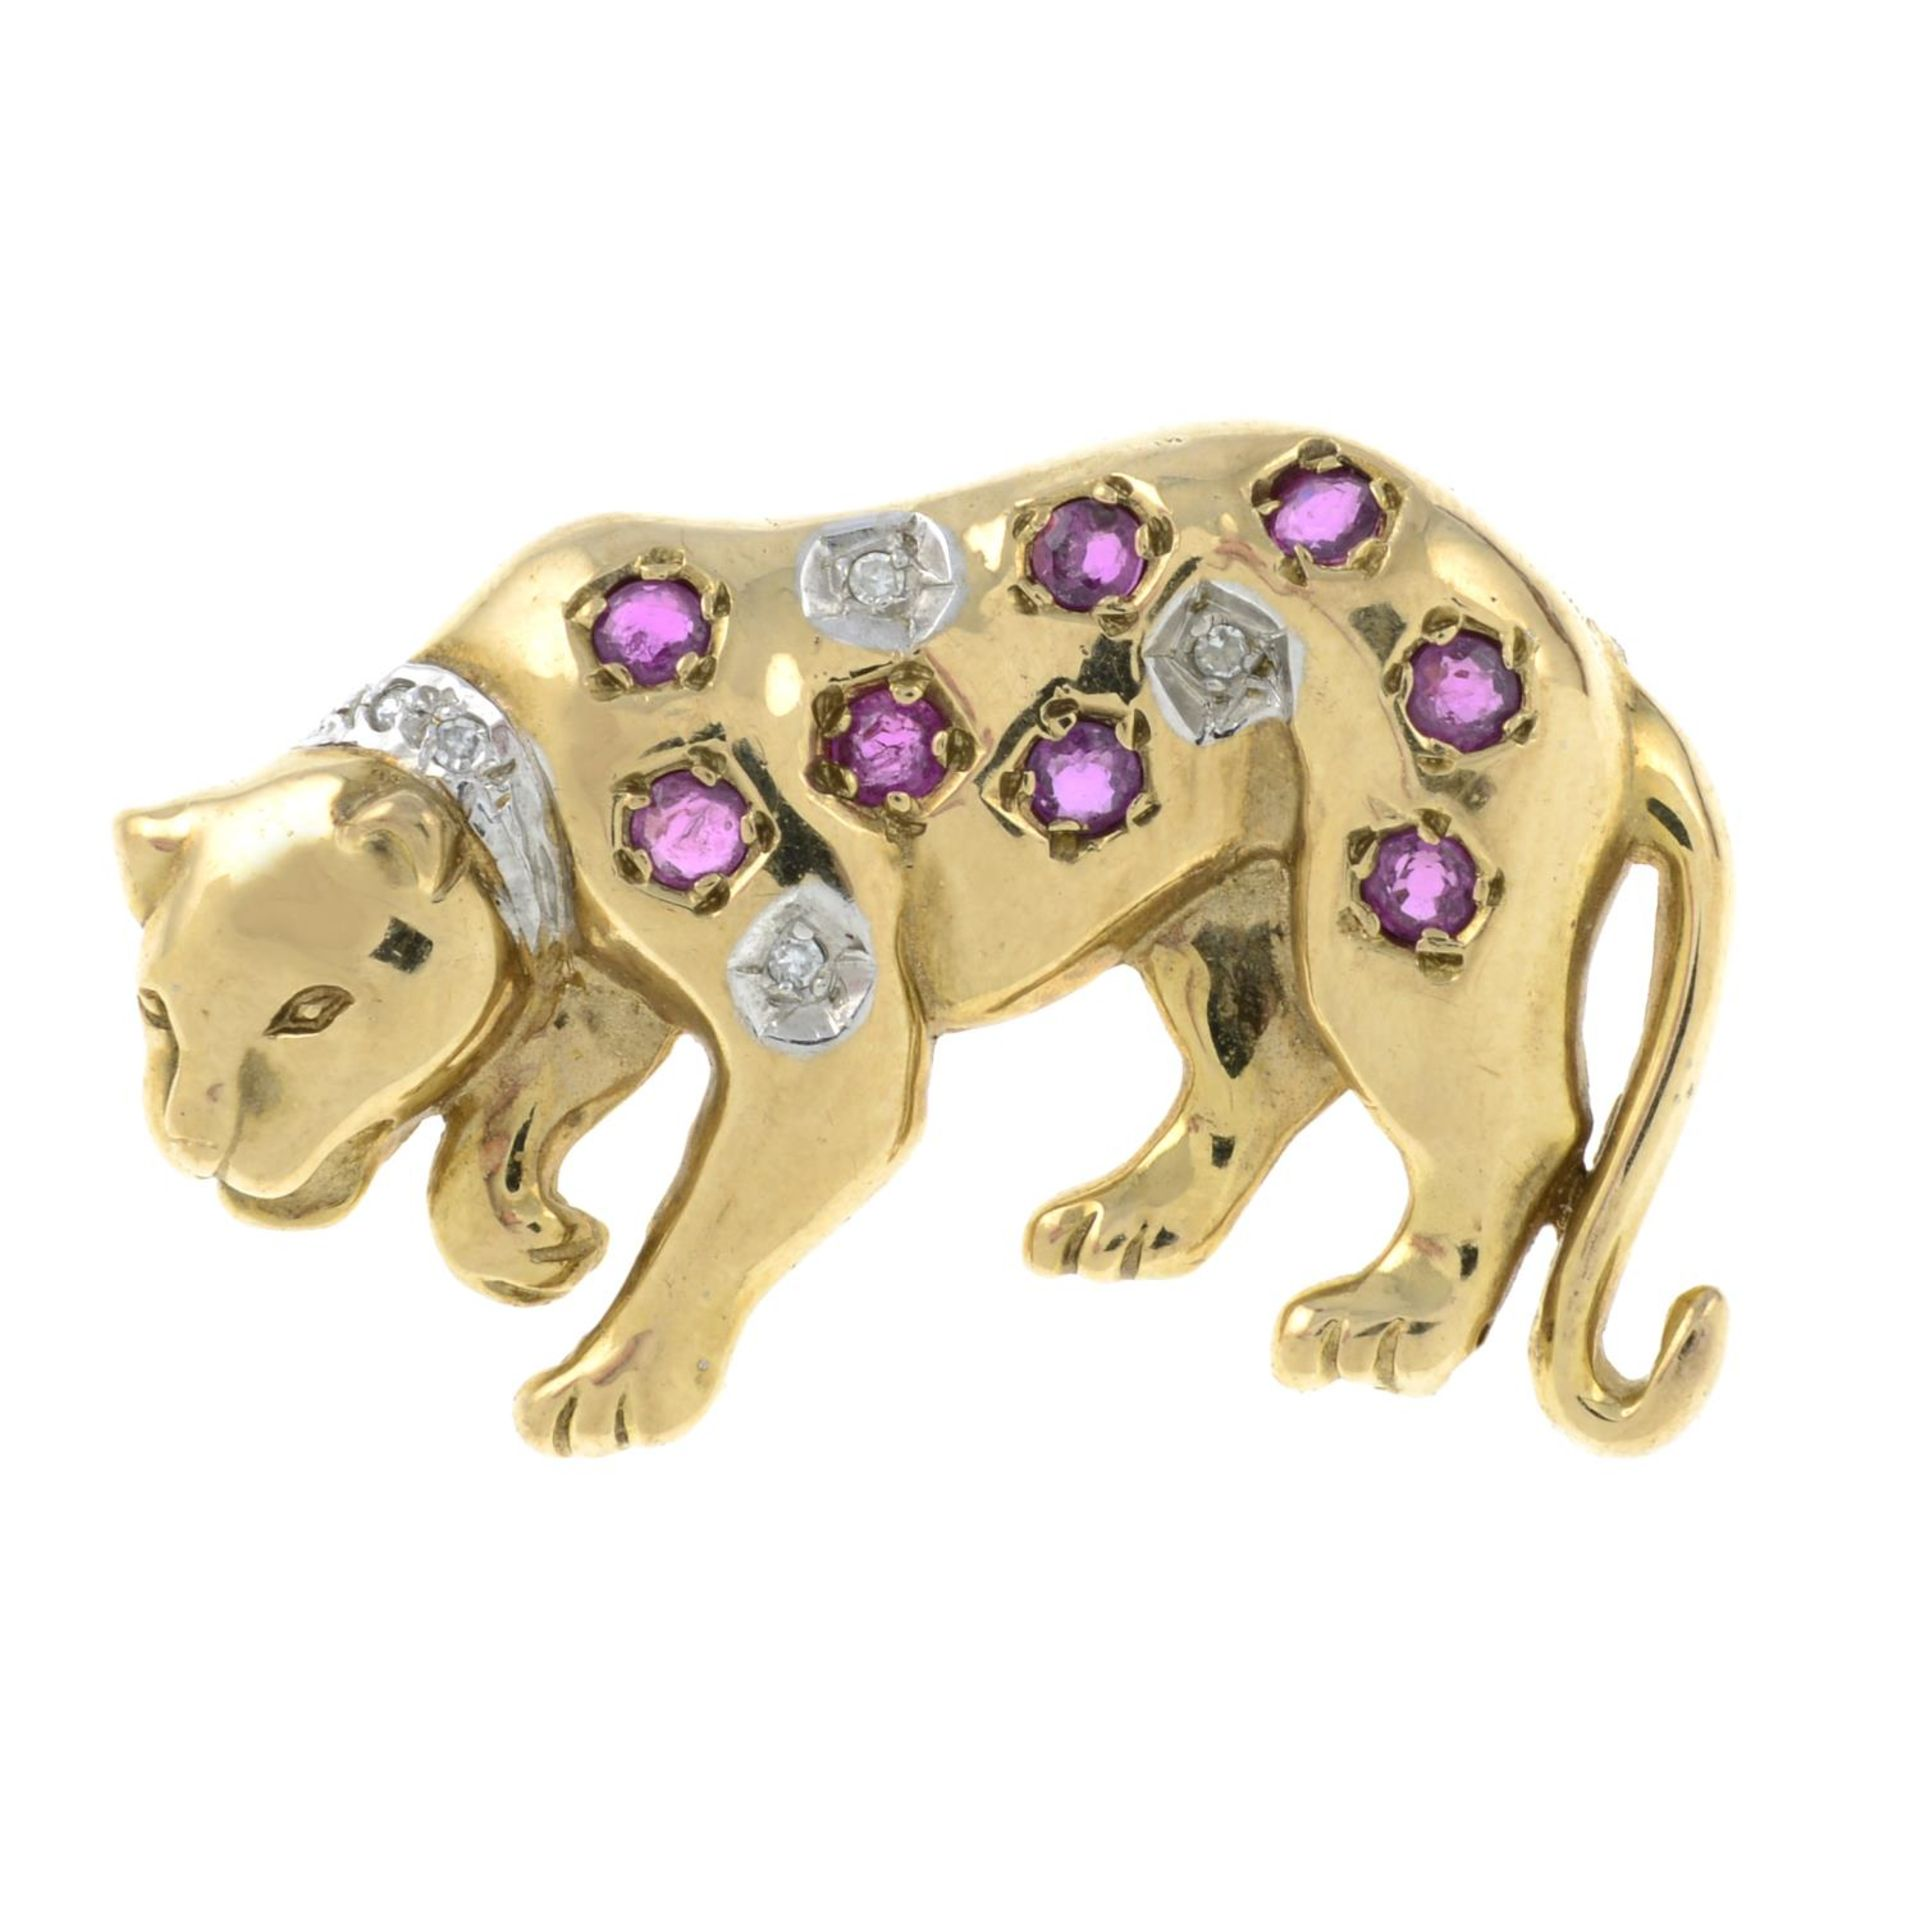 A 9ct gold ruby and diamond leopard brooch.Hallmarks for 9ct gold.